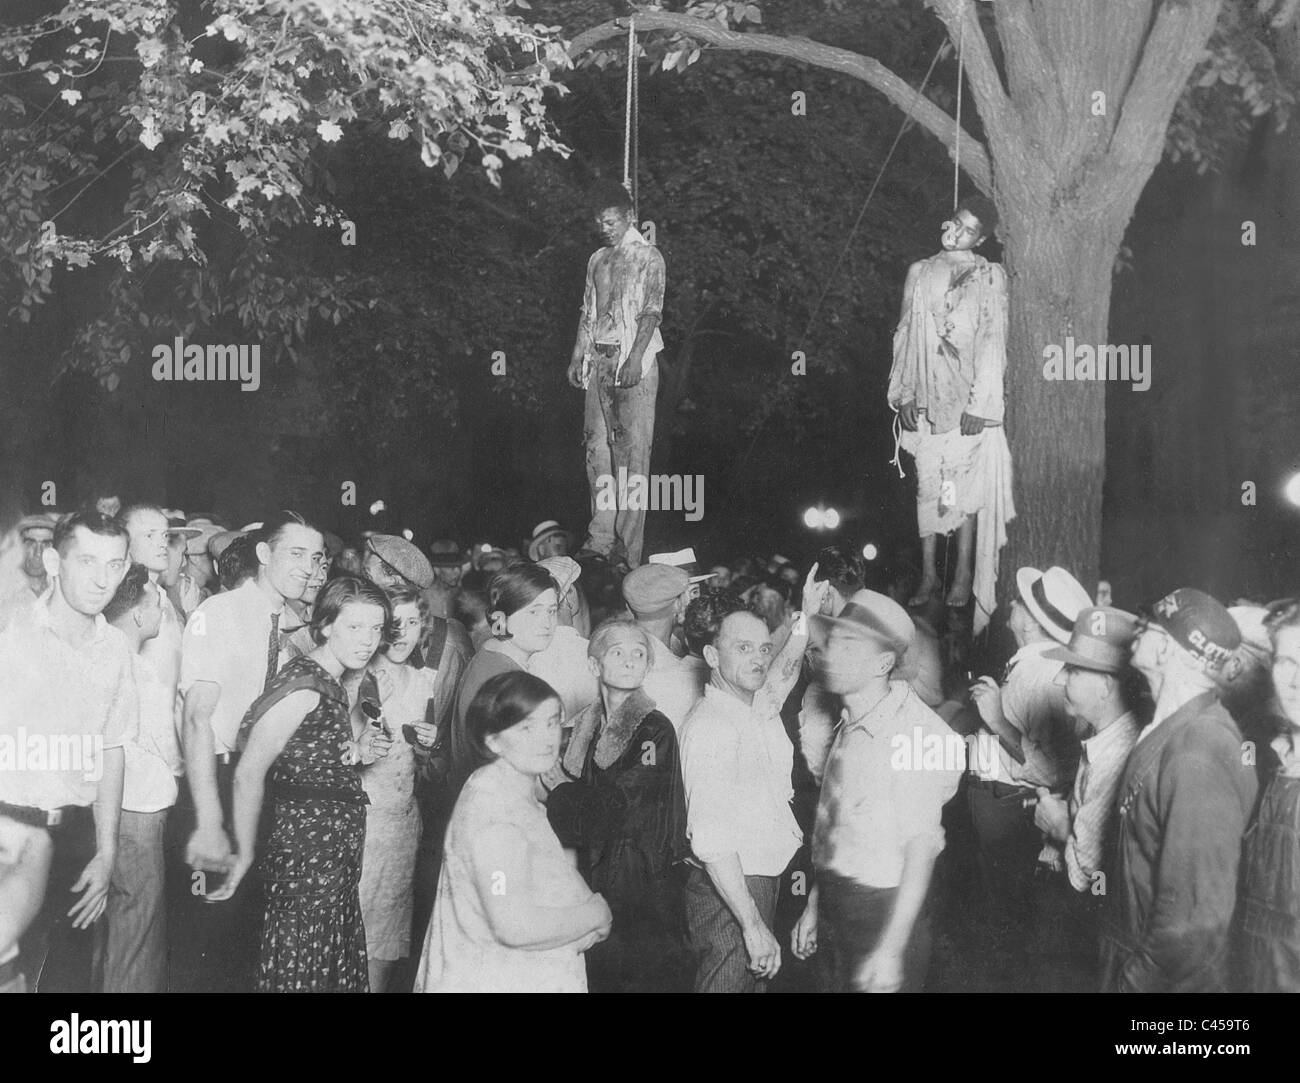 Lynching of two colored men in the United States, 1934 - Stock Image